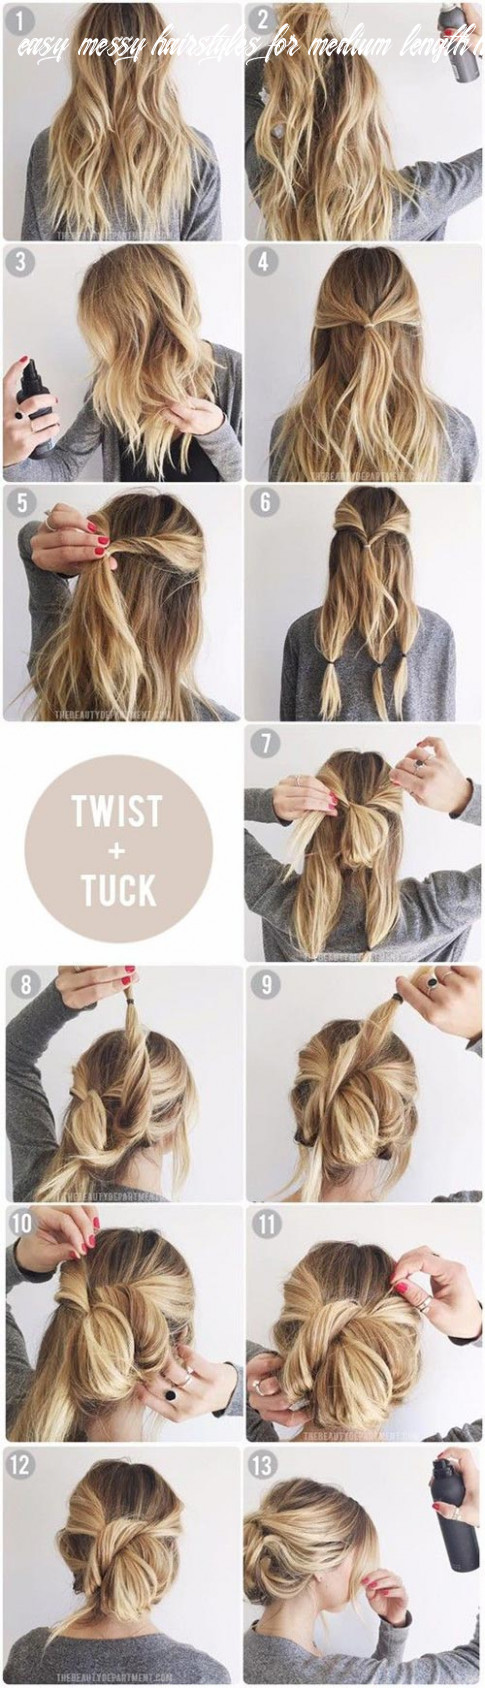 Top 12 messy updo tutorials for different hair lengths – wcases easy messy hairstyles for medium length hair